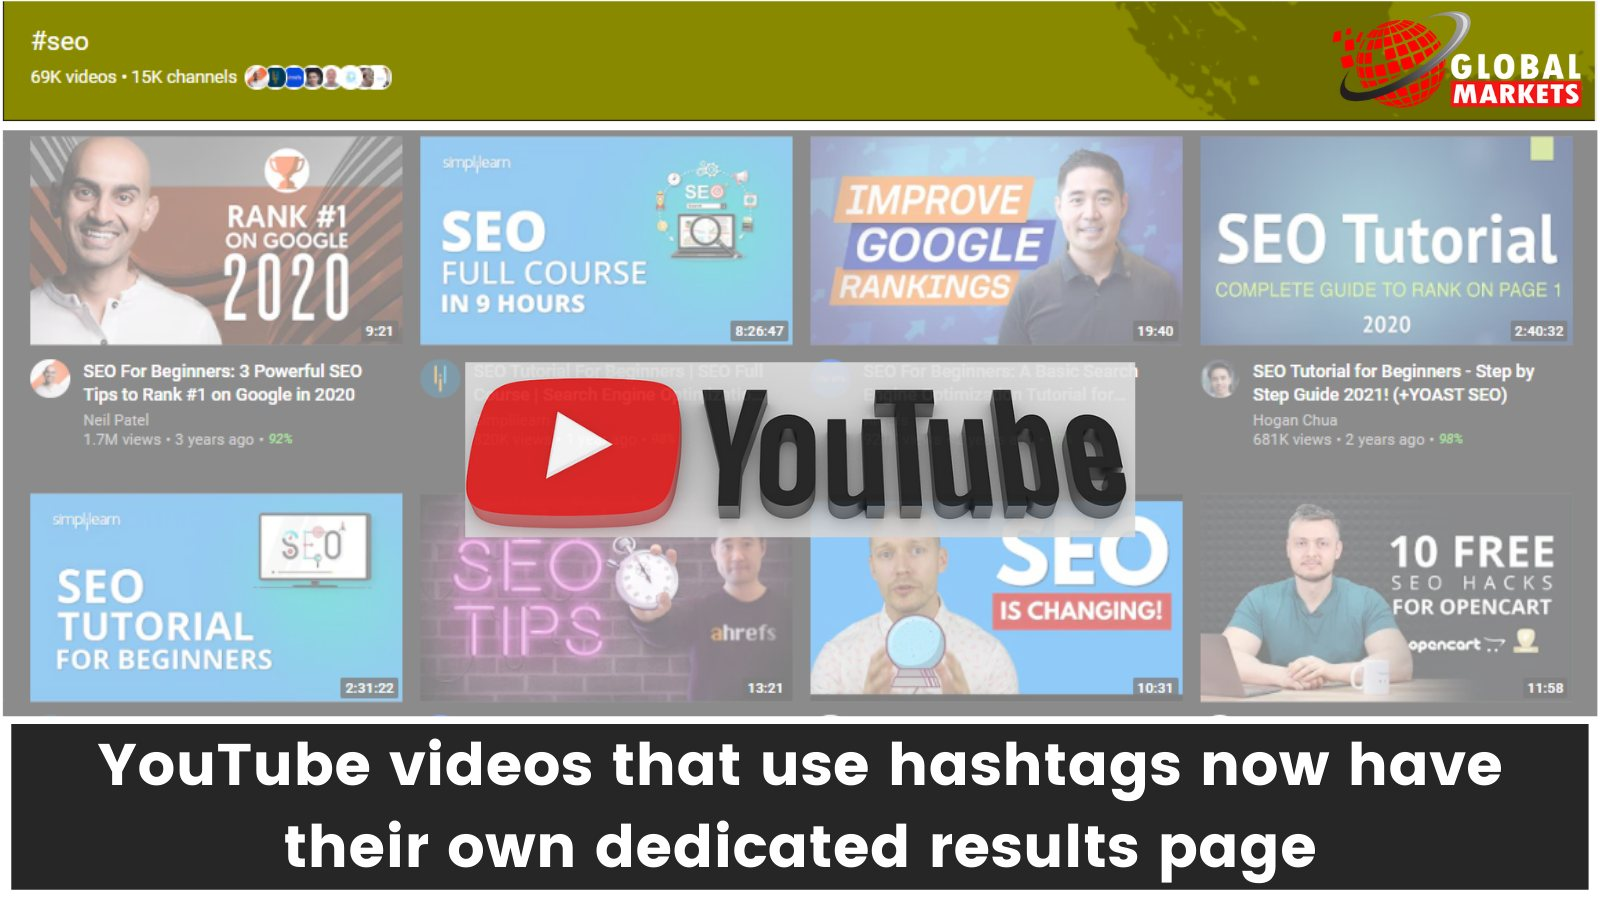 YouTube videos that use hashtags now have their own dedicated results page